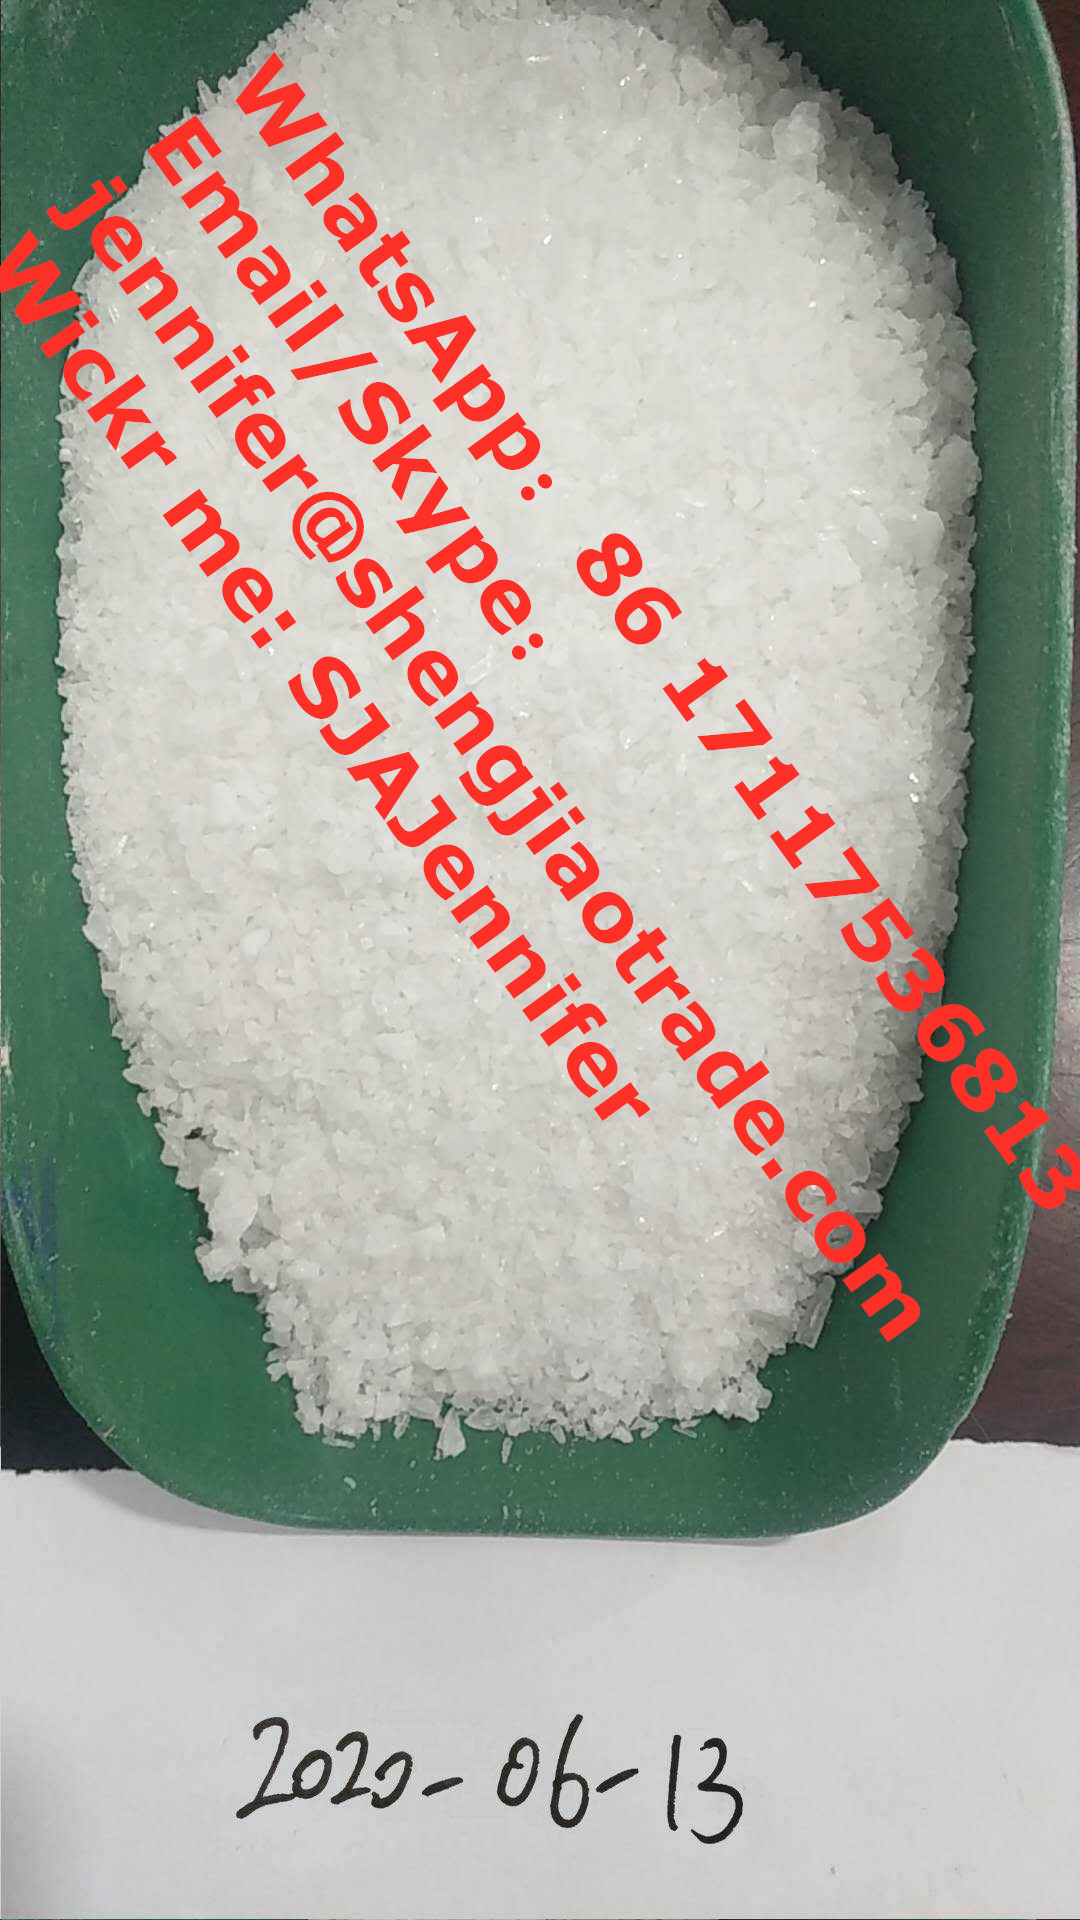 Pure 2fdck 2f-dck dck crystals 2fdck clare crystal in stock fast safe shipping WhatsApp:86 171175368